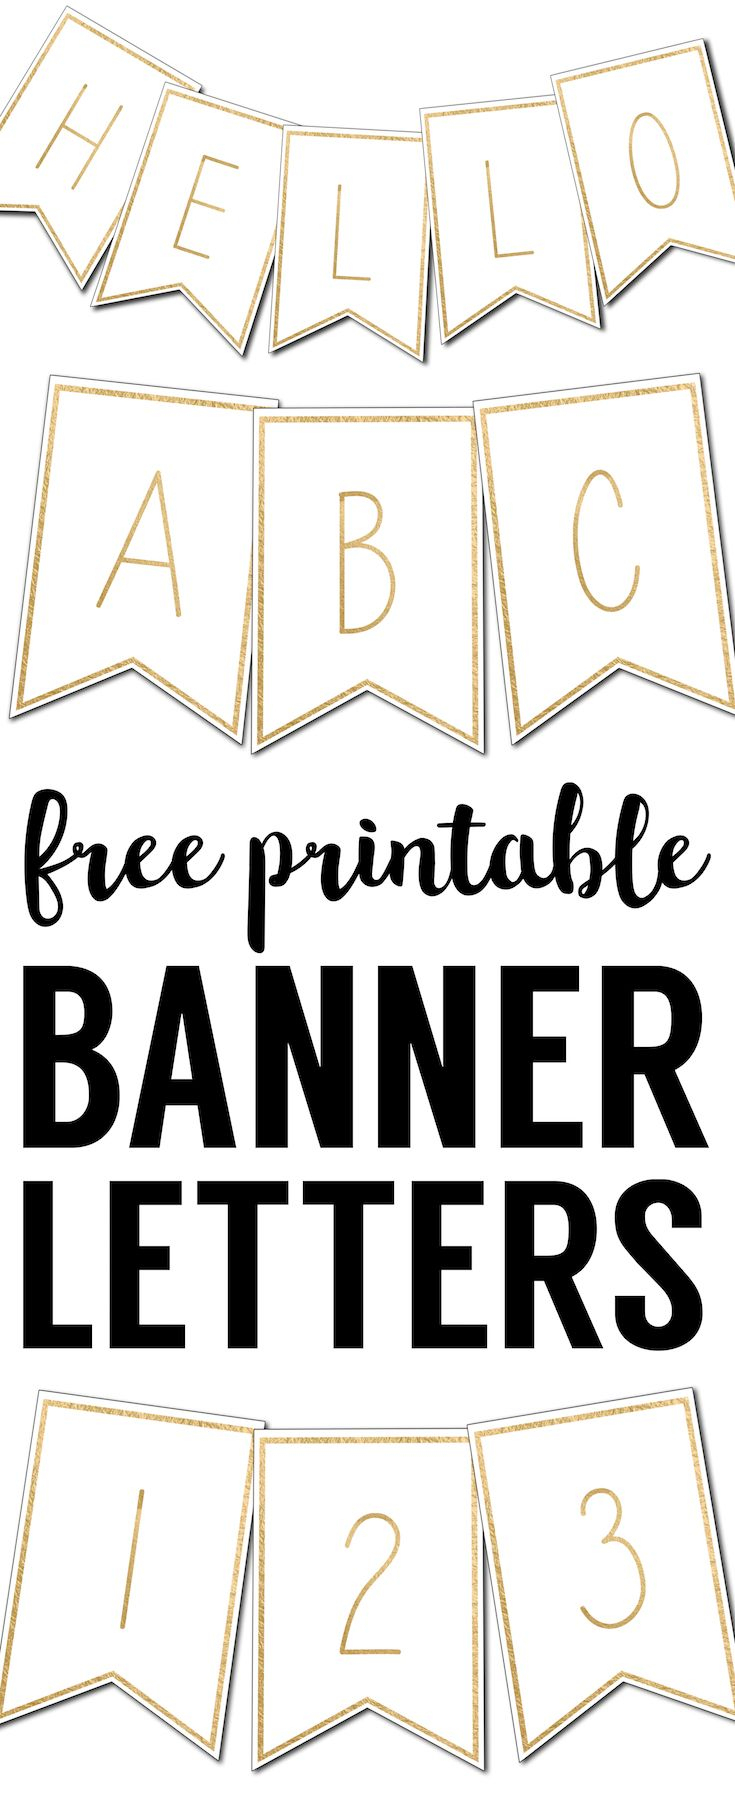 Free Printable Banner Letters Templates   Krštenje   Pinterest - Printable Banner Letters Template Free